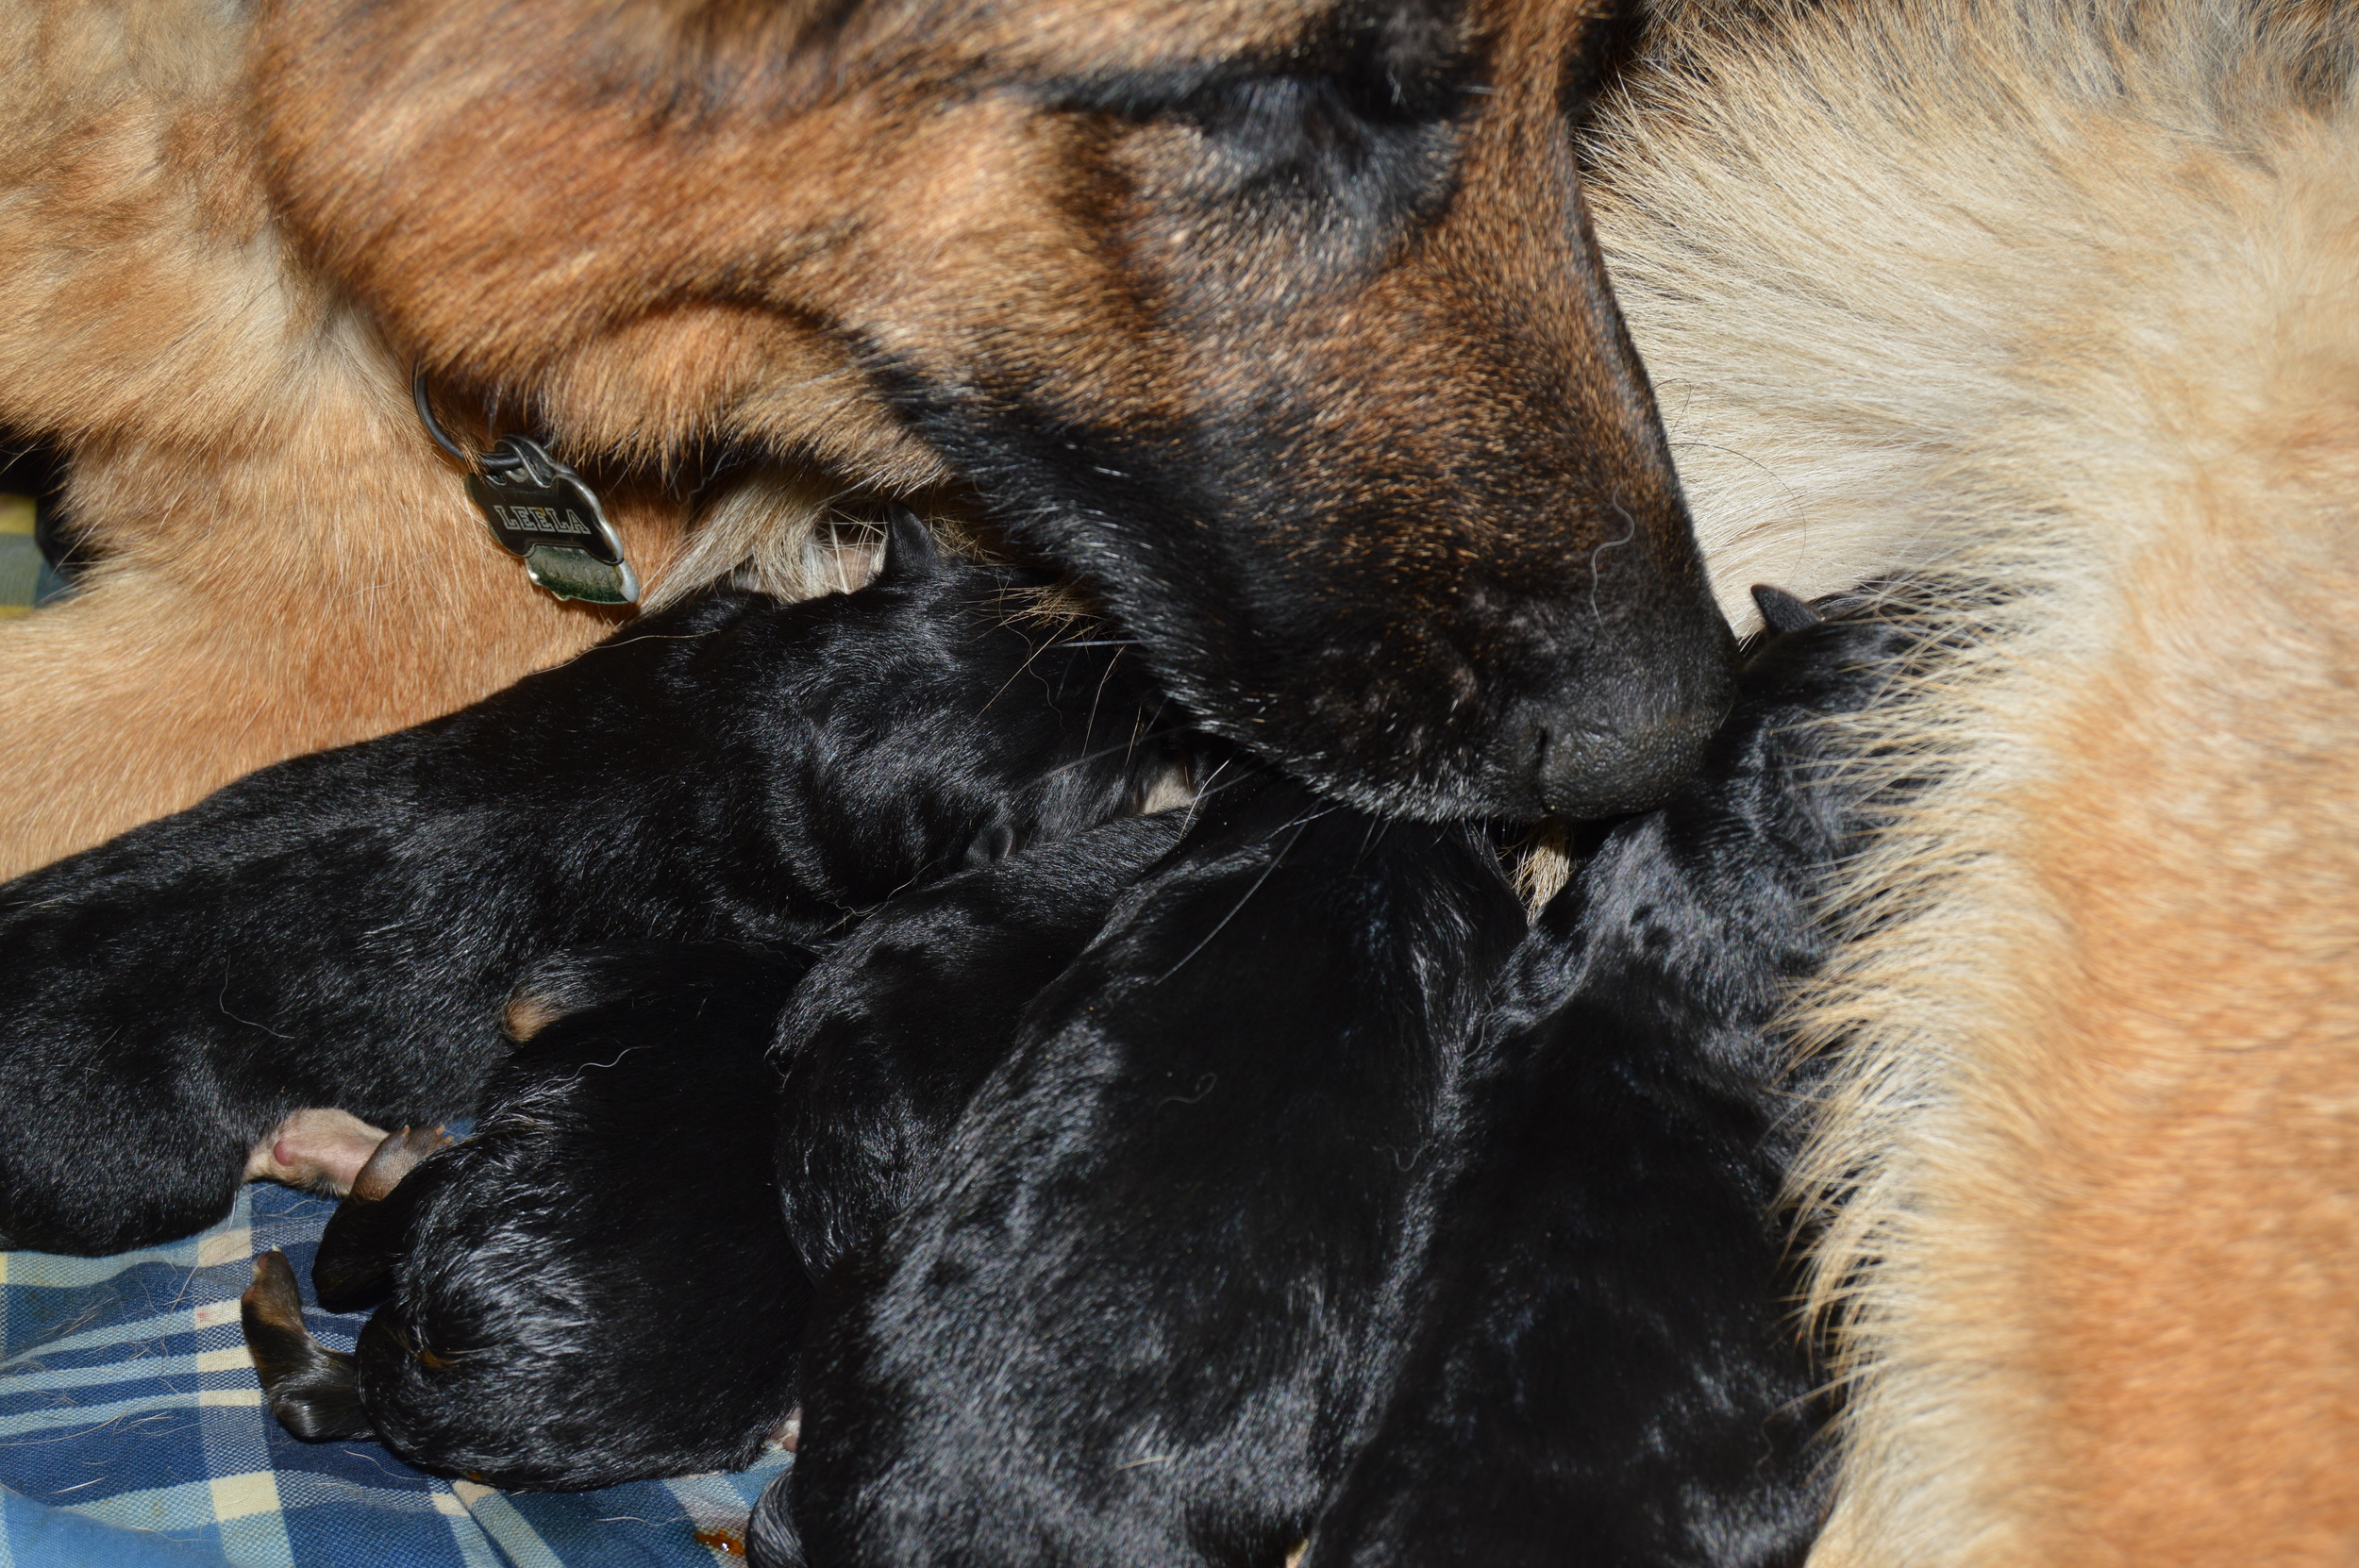 Jayden (affectionately called Leela) is a wonderful mom to her new puppies.